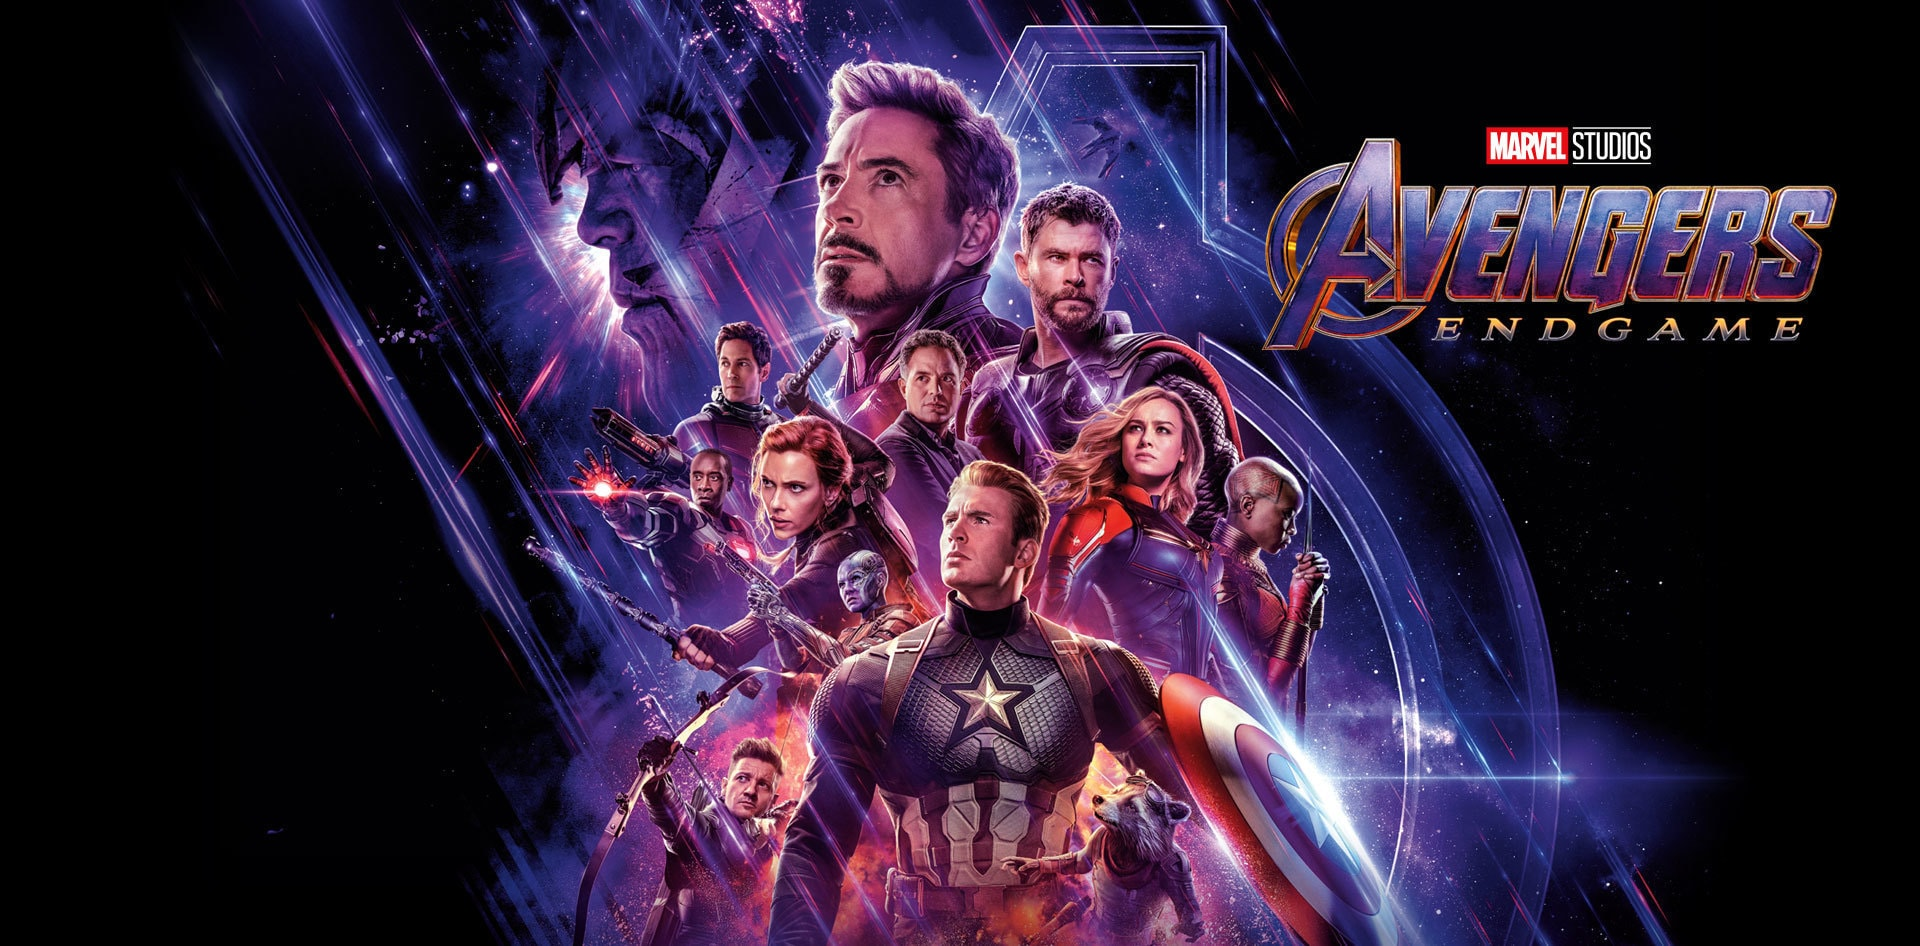 Marvel Studios' Avengers: Endgame | Movies | Marvel Branded Page | Marvel